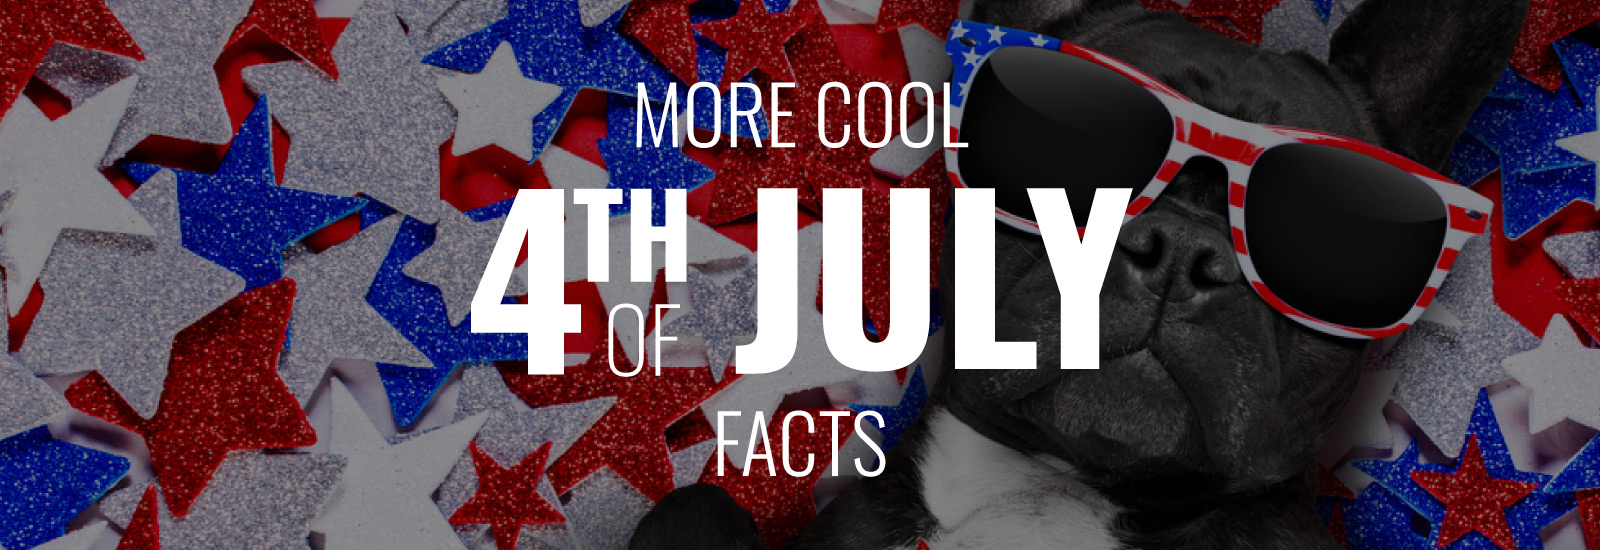 More Cool 4th of July Facts